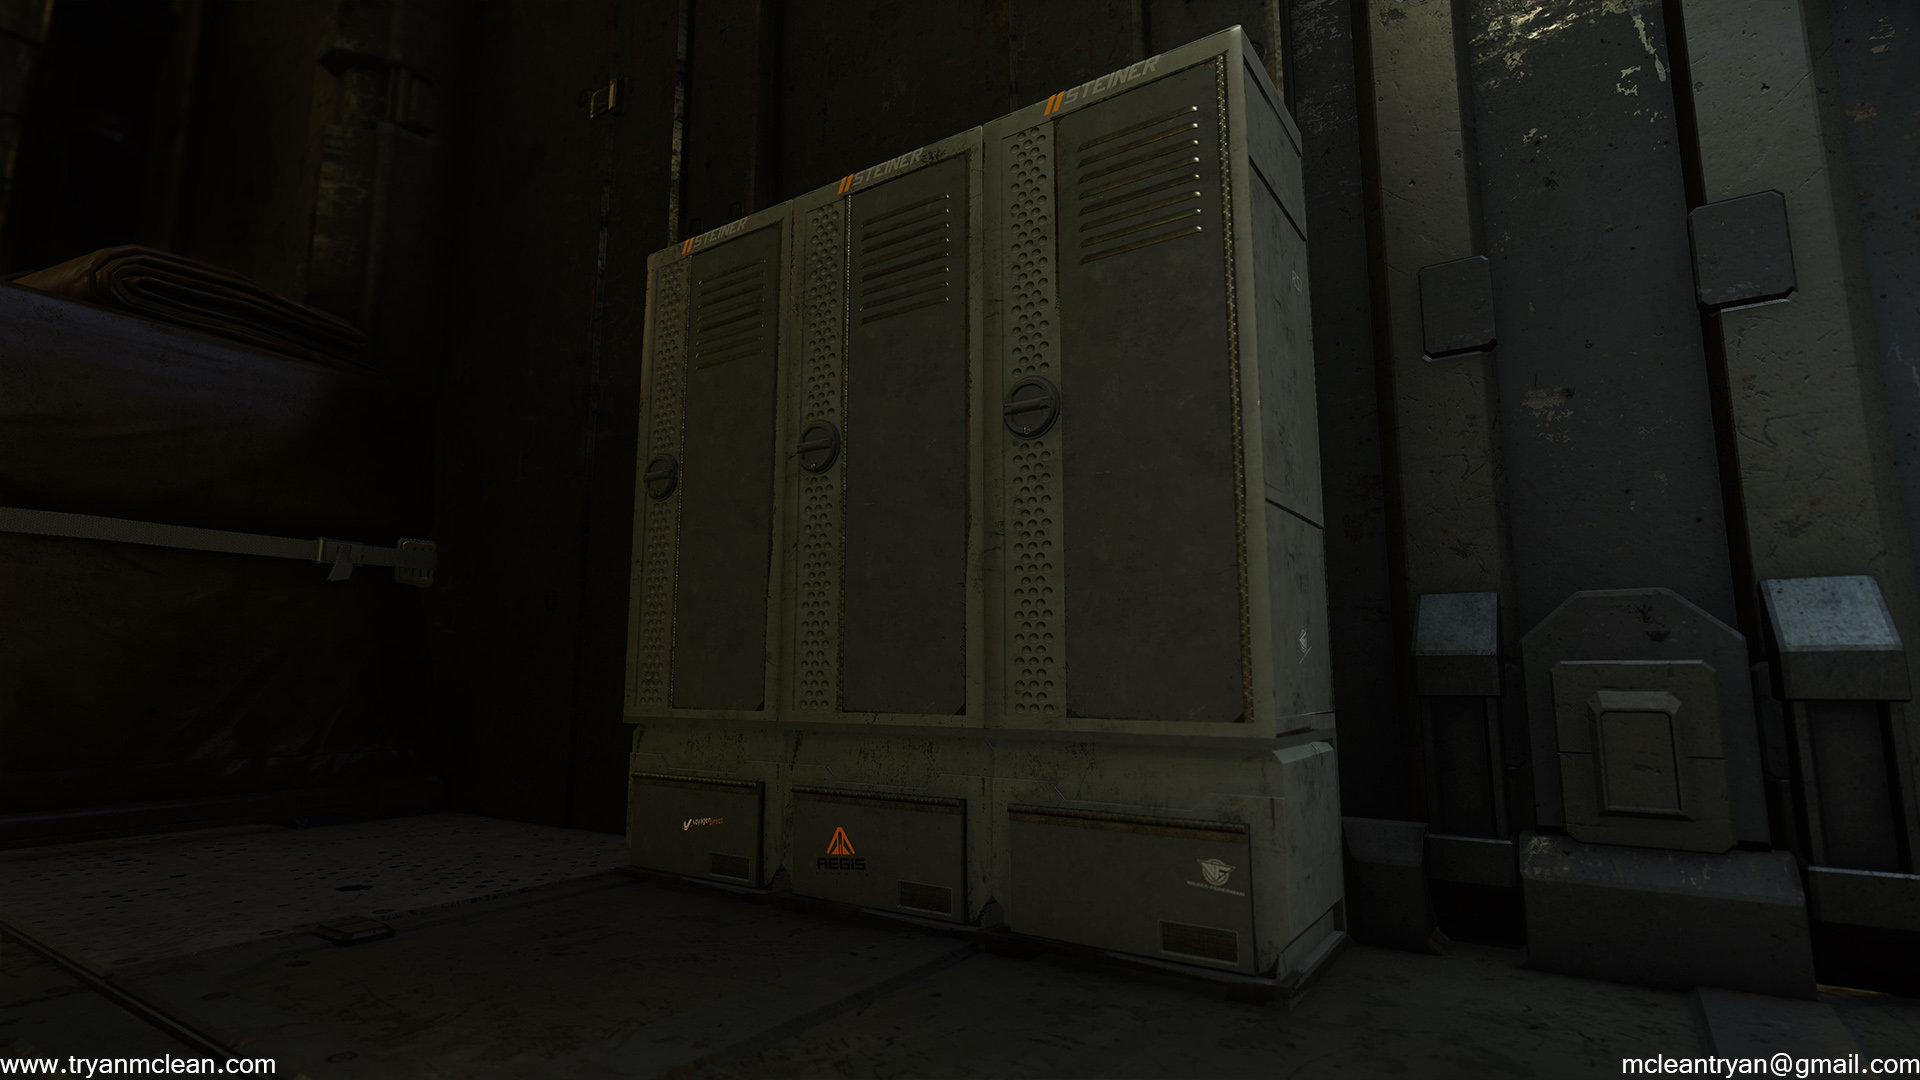 Star Citizen Subscriber Flair Locker. Modelling by myself. Textures and blending done by others on team.